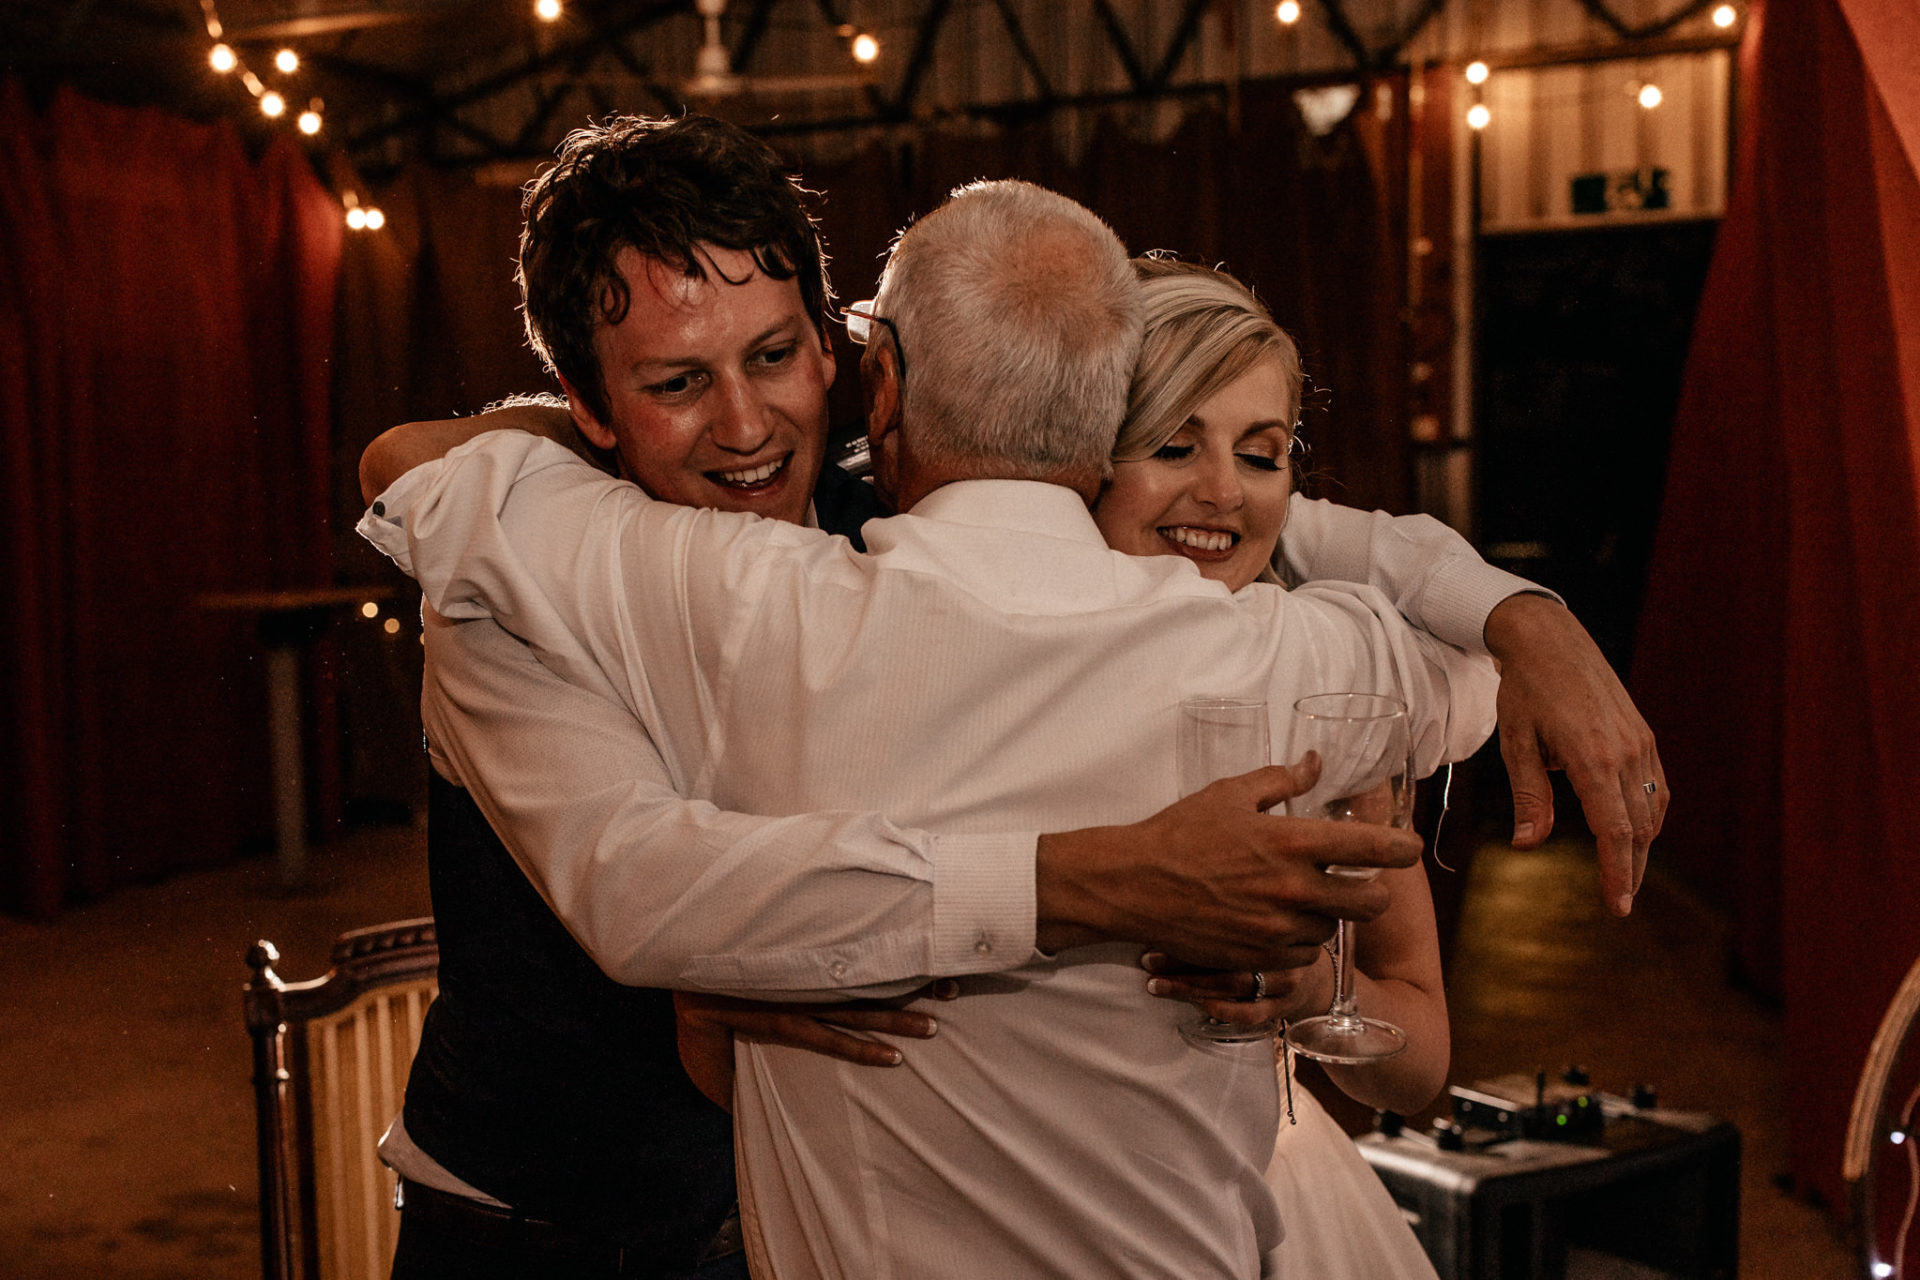 backyard-wedding-australia-melbourne-bride-groom-speeches-hug-father